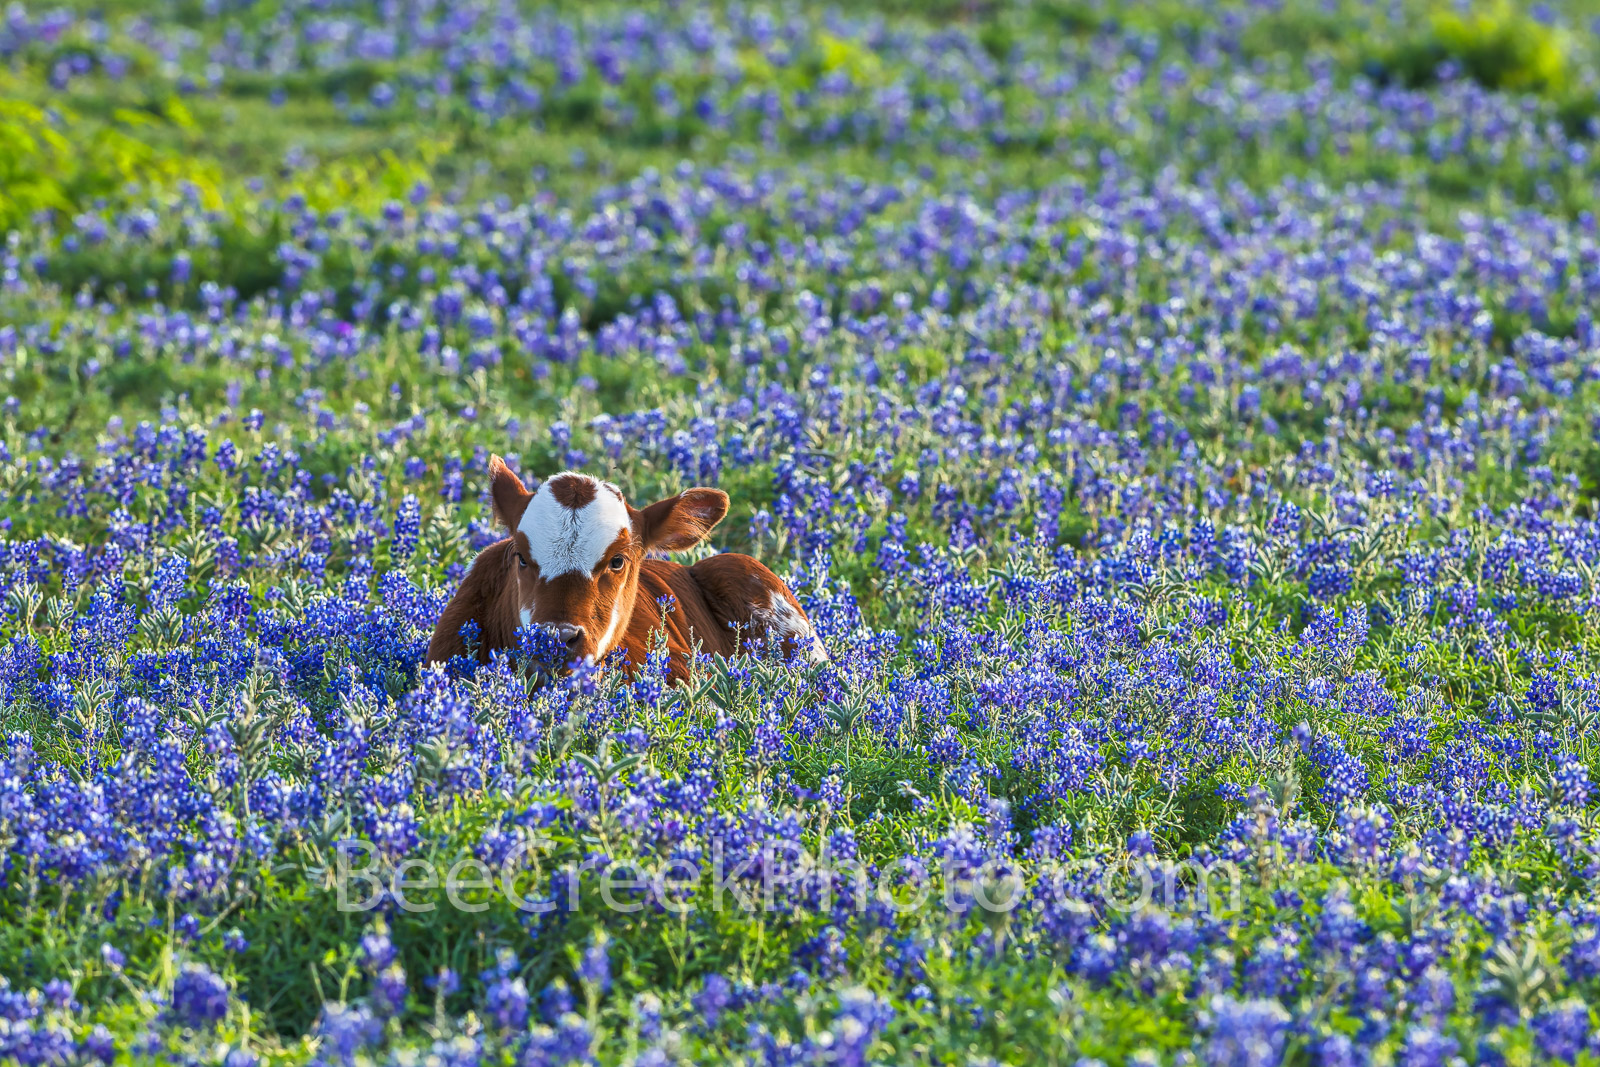 Longhorn Calf in Bluebonnets - This probably was my favorite bluebonnet image this year of this longhorn calf laying in a field...